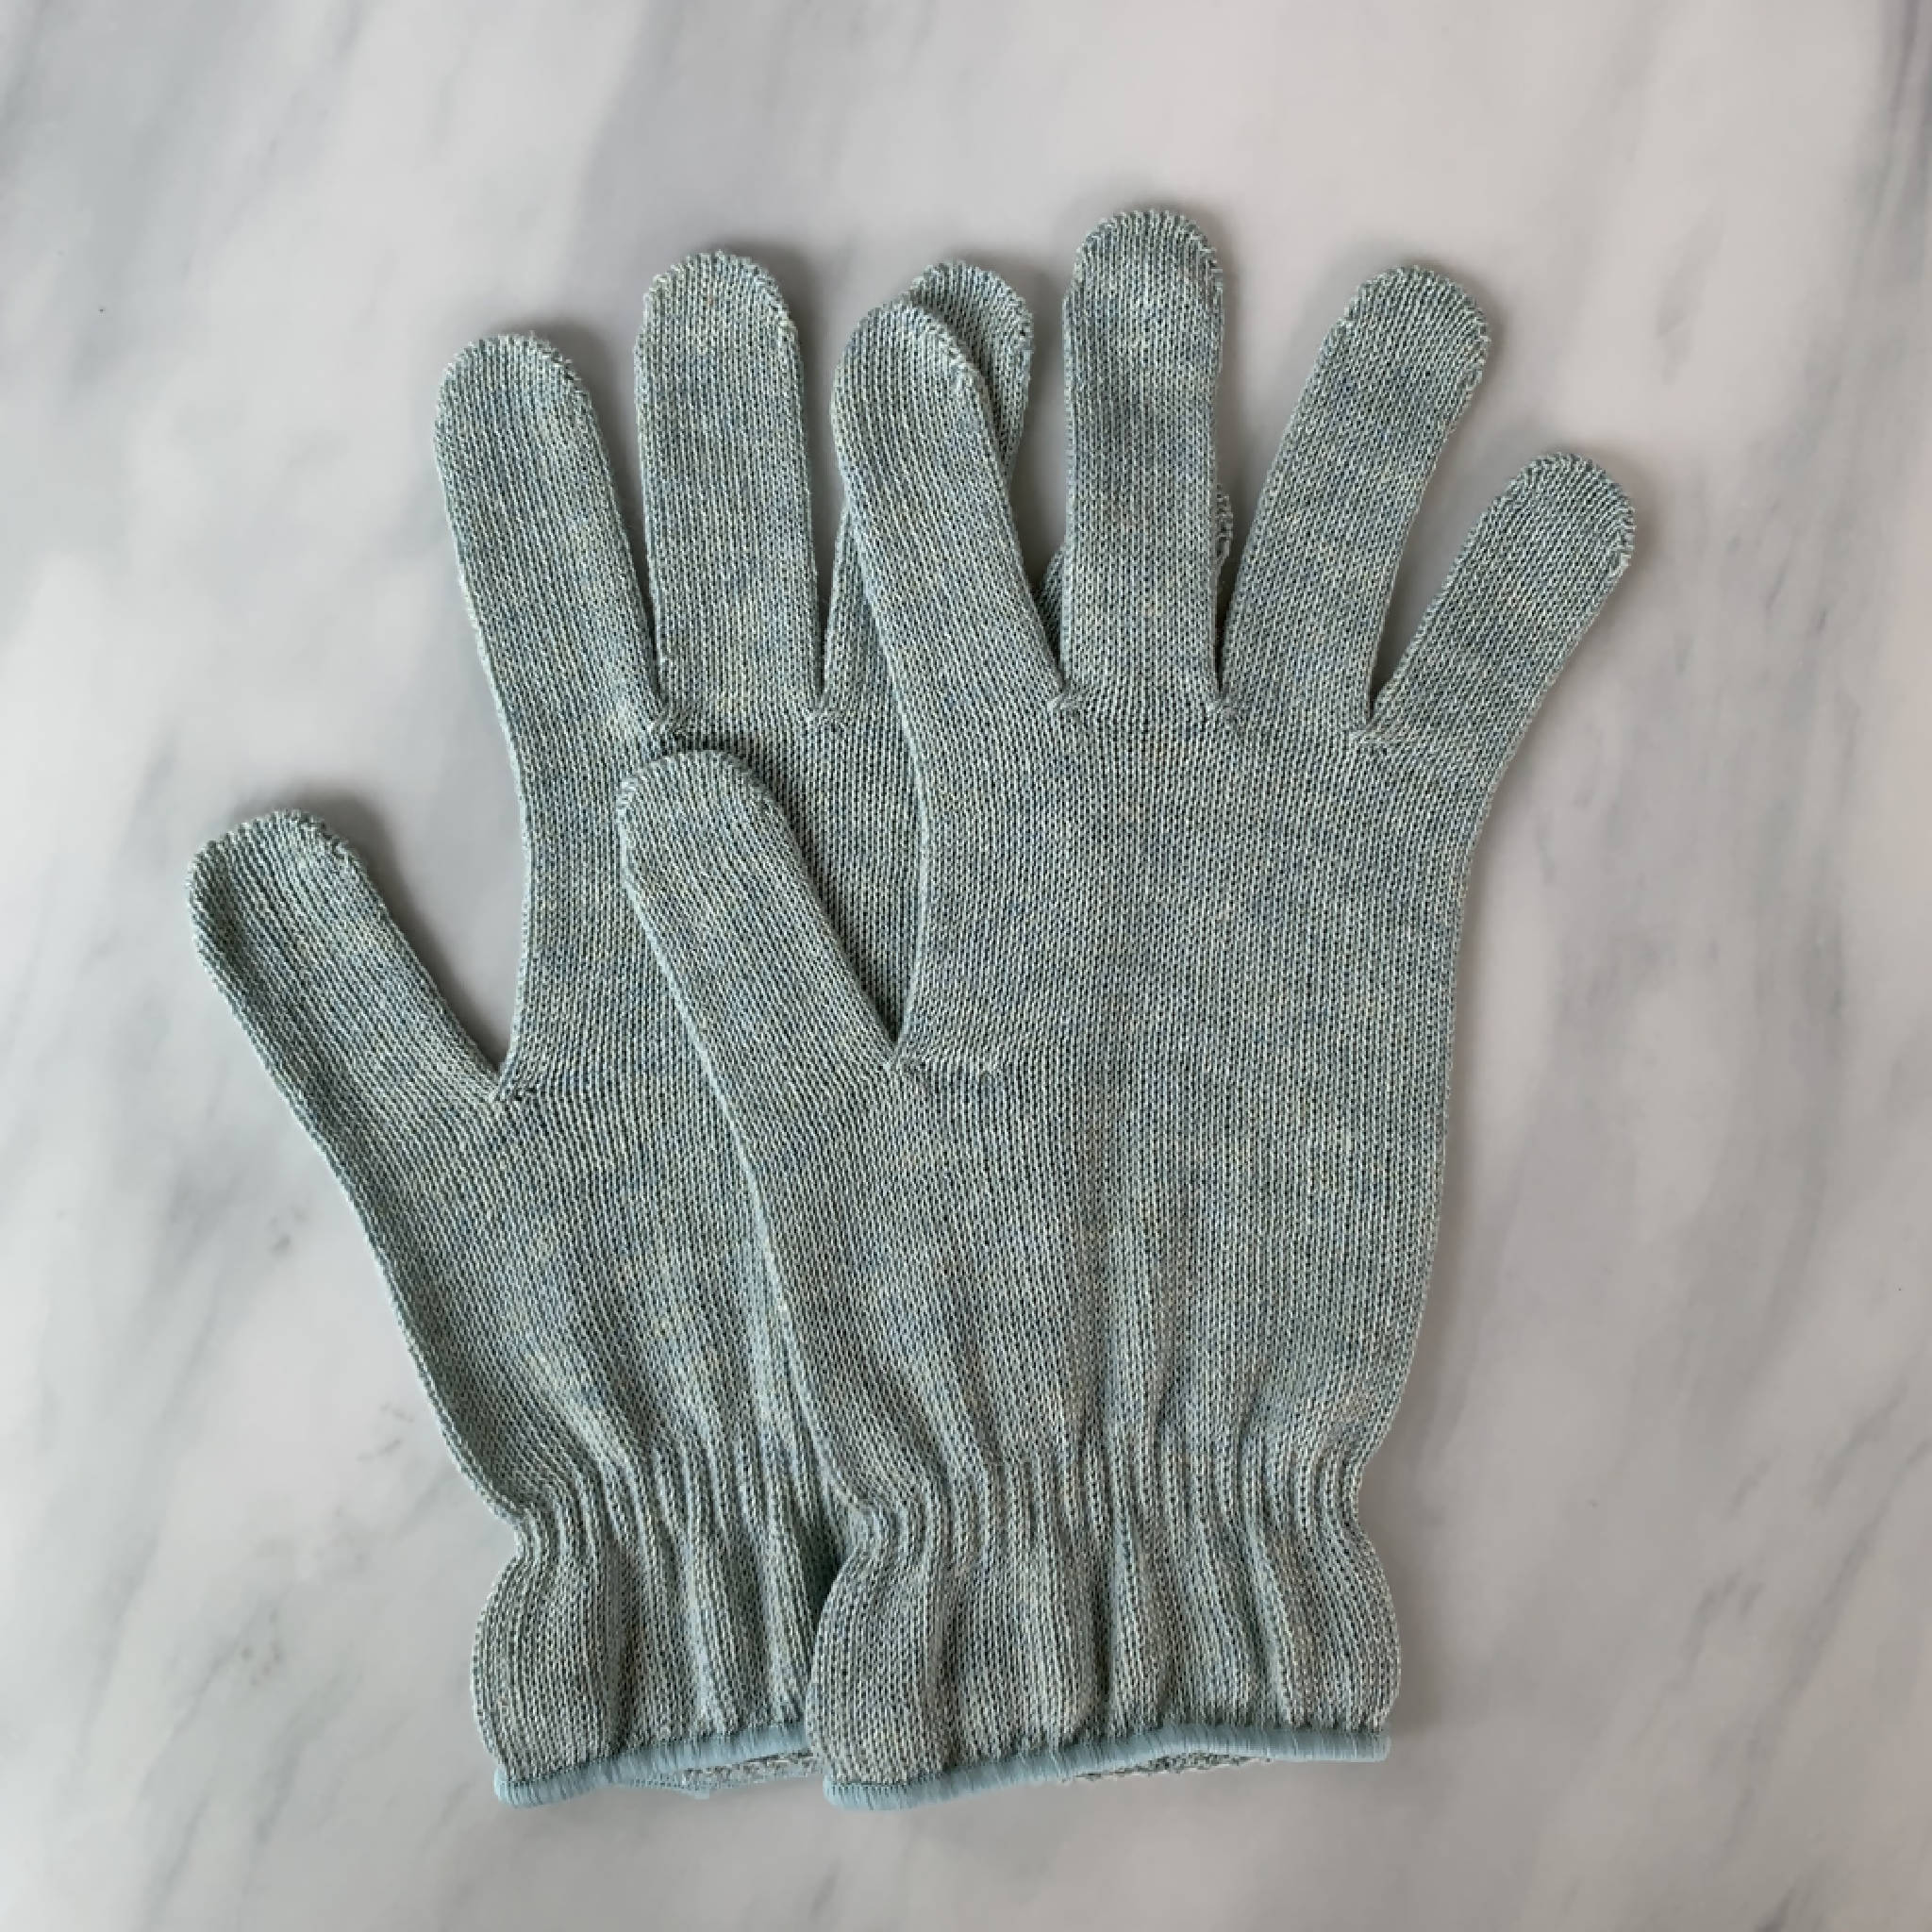 Botanical Dyed Organic Cotton Gloves